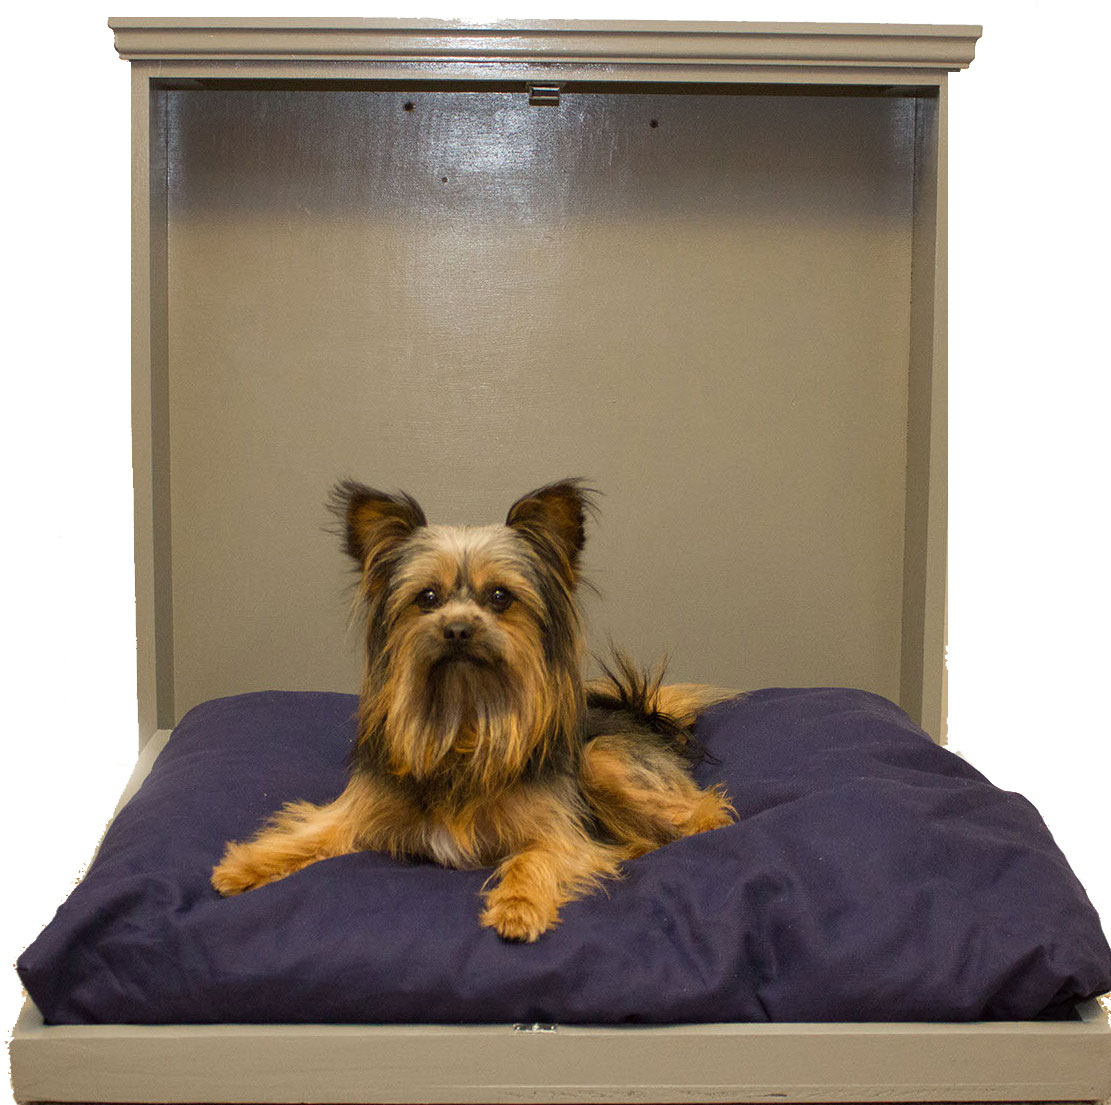 Pet Murphy Beds for Dogs